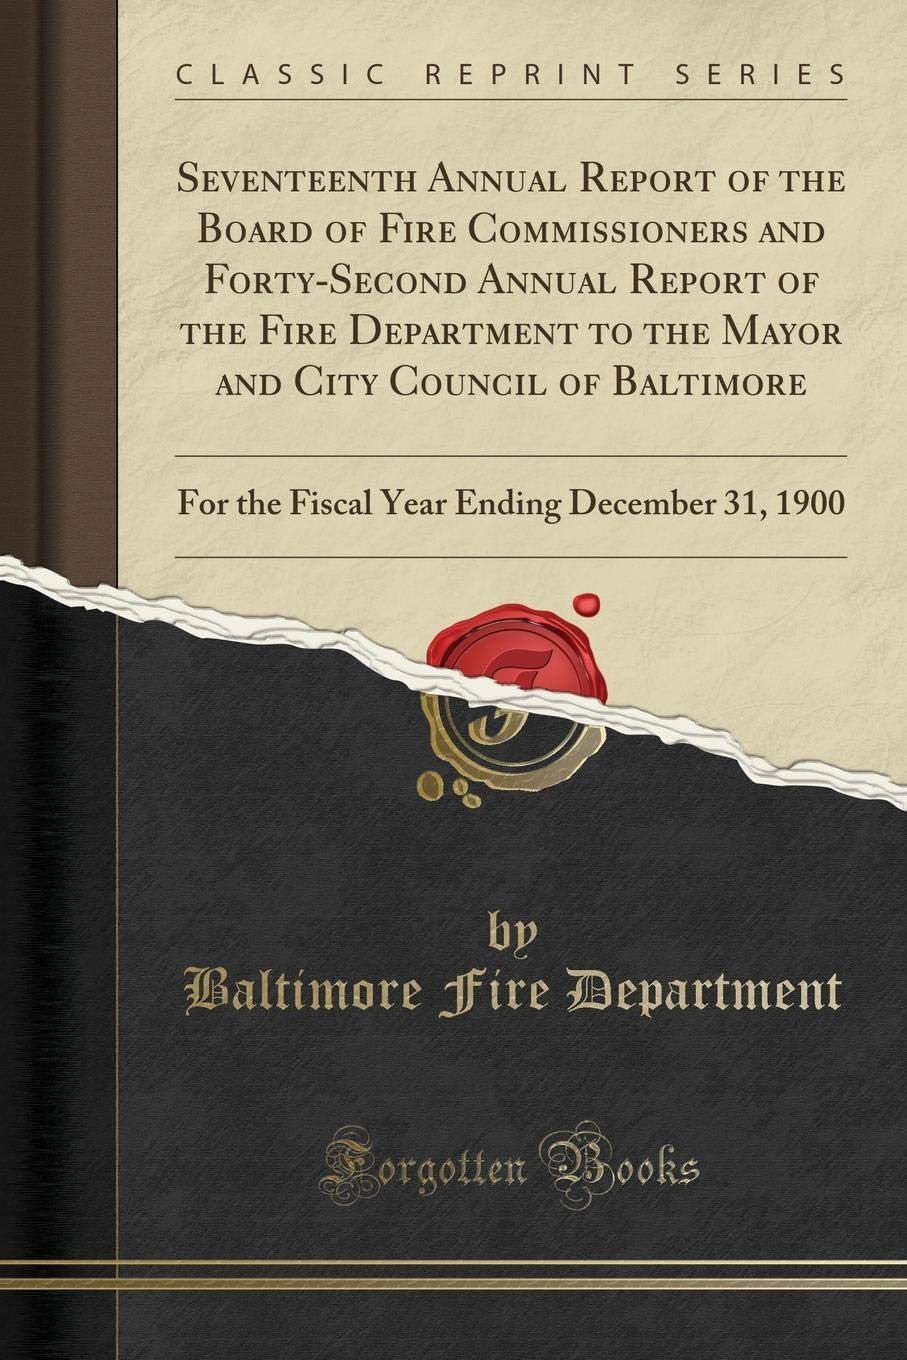 Download Seventeenth Annual Report of the Board of Fire Commissioners and Forty-Second Annual Report of the Fire Department to the Mayor and City Council of ... Ending December 31, 1900 (Classic Reprint) pdf